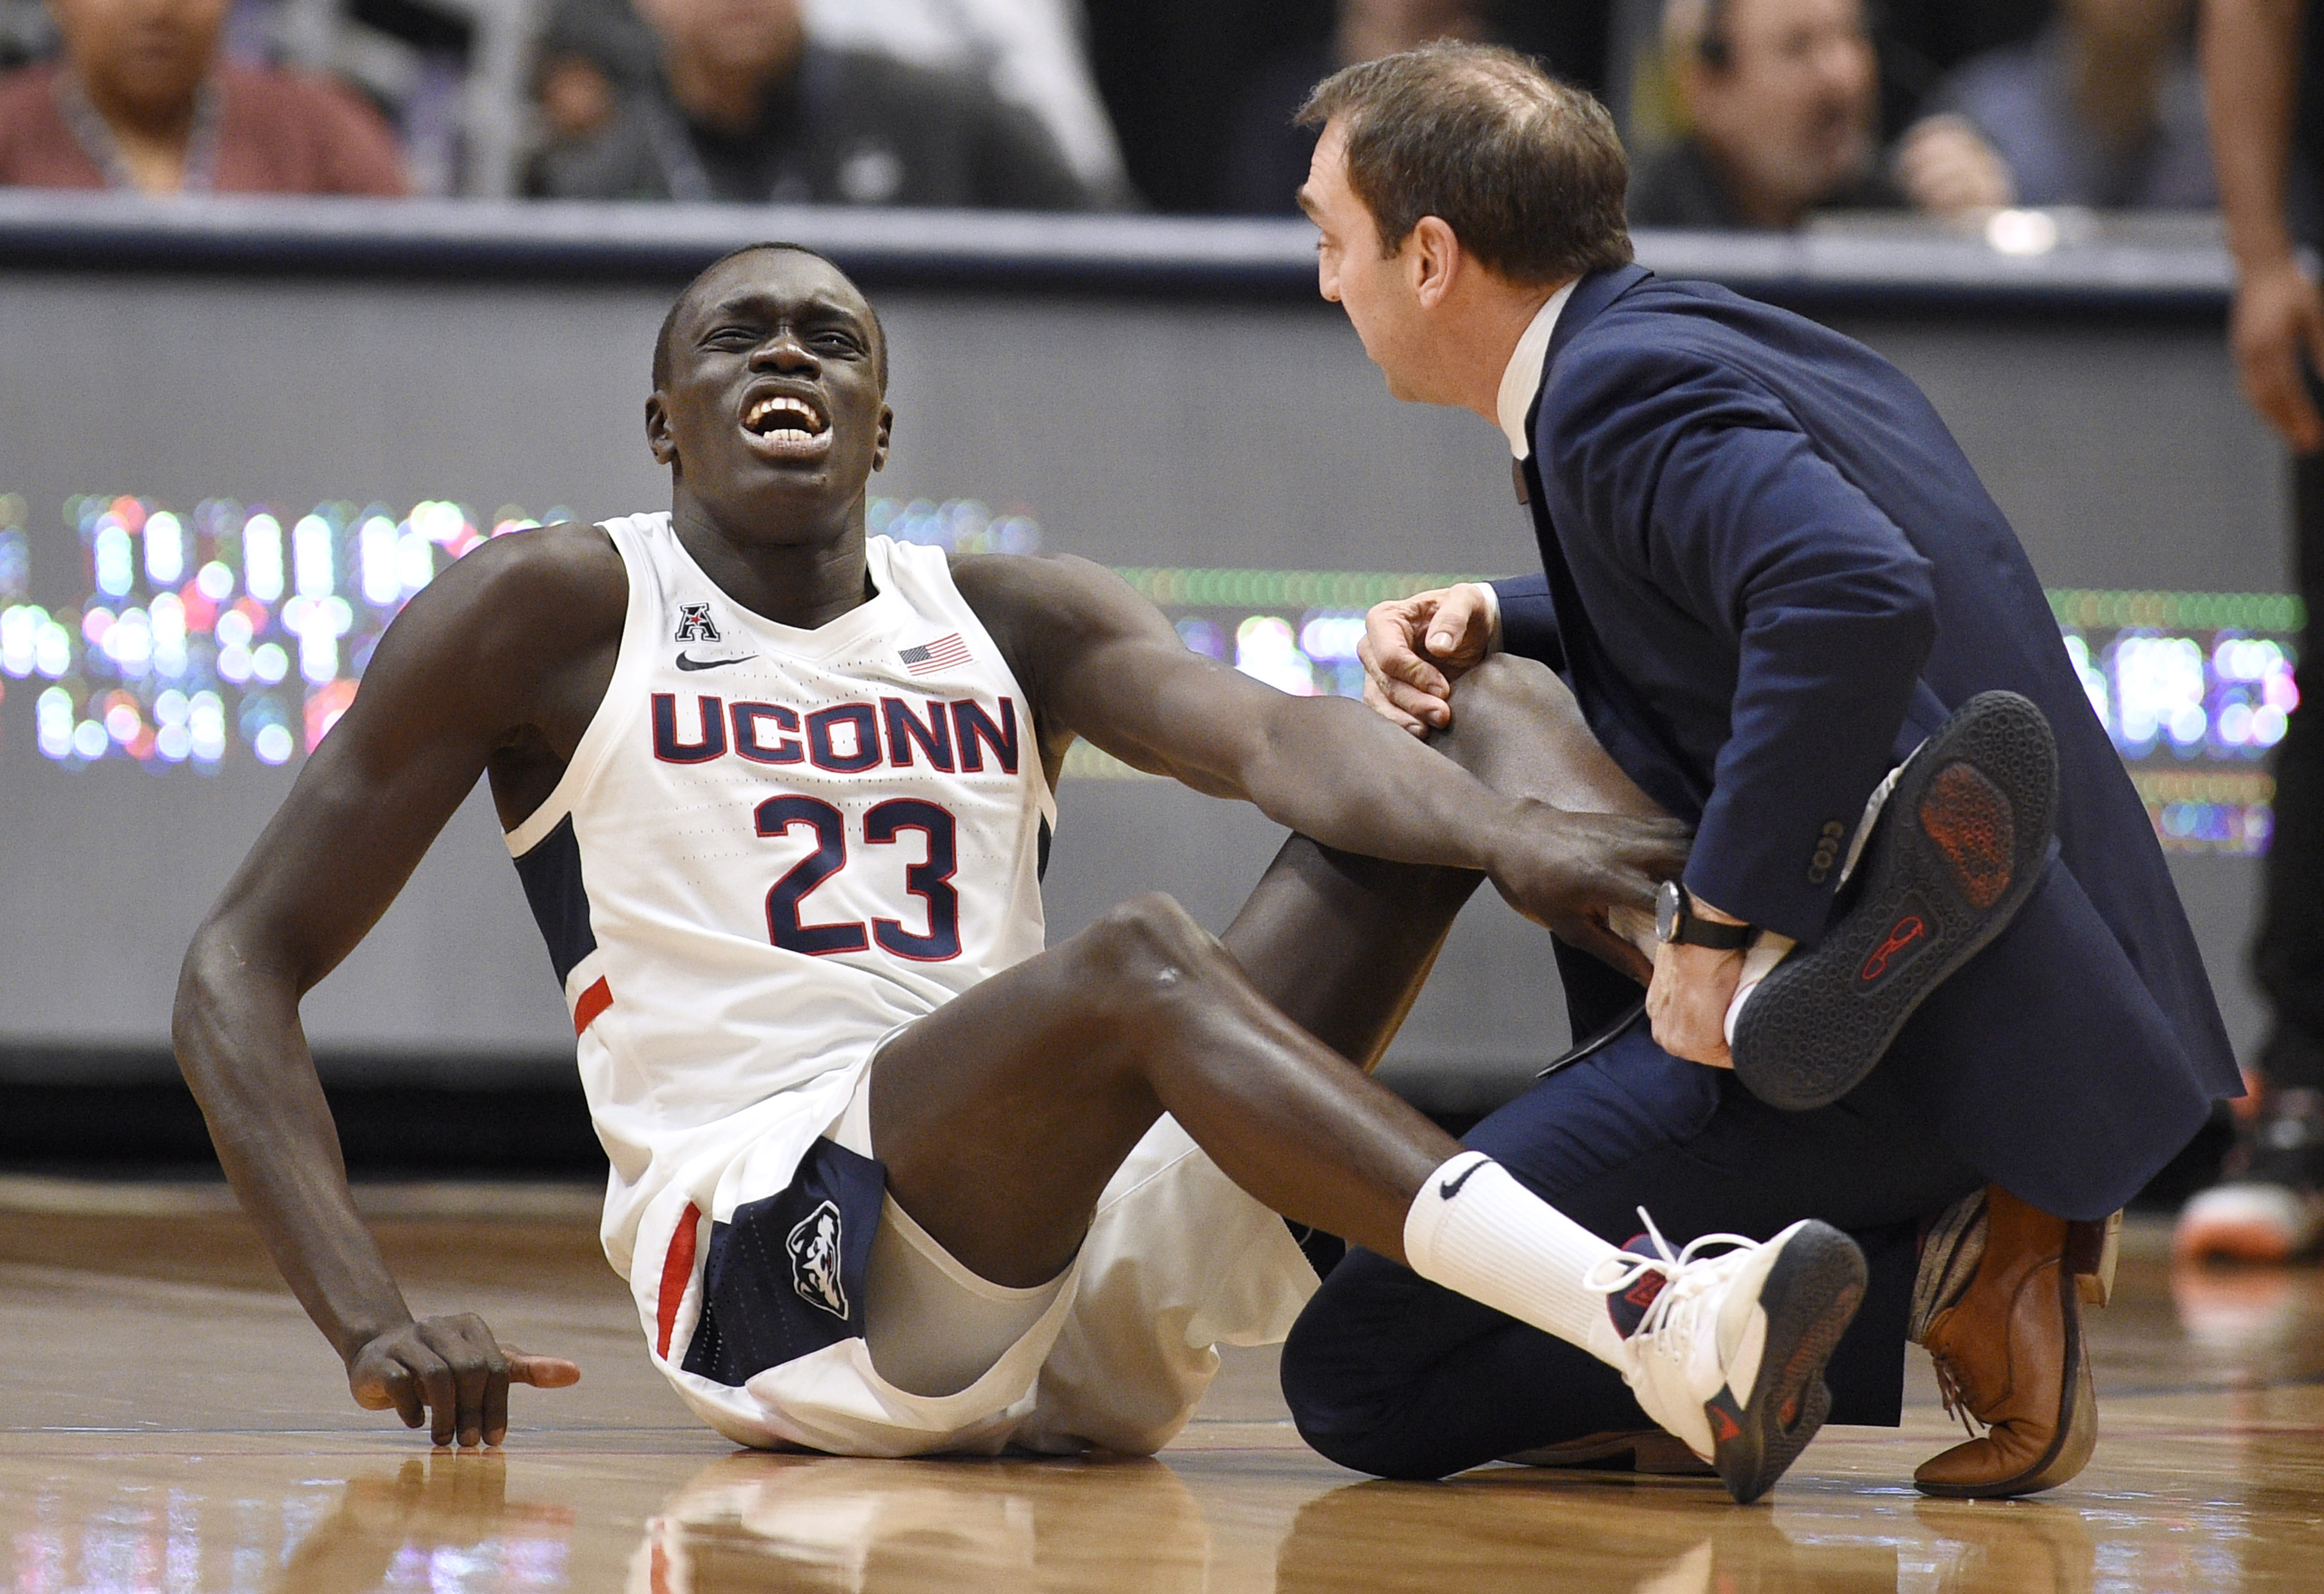 UConn's Akok out for season with torn left Achilles tendon